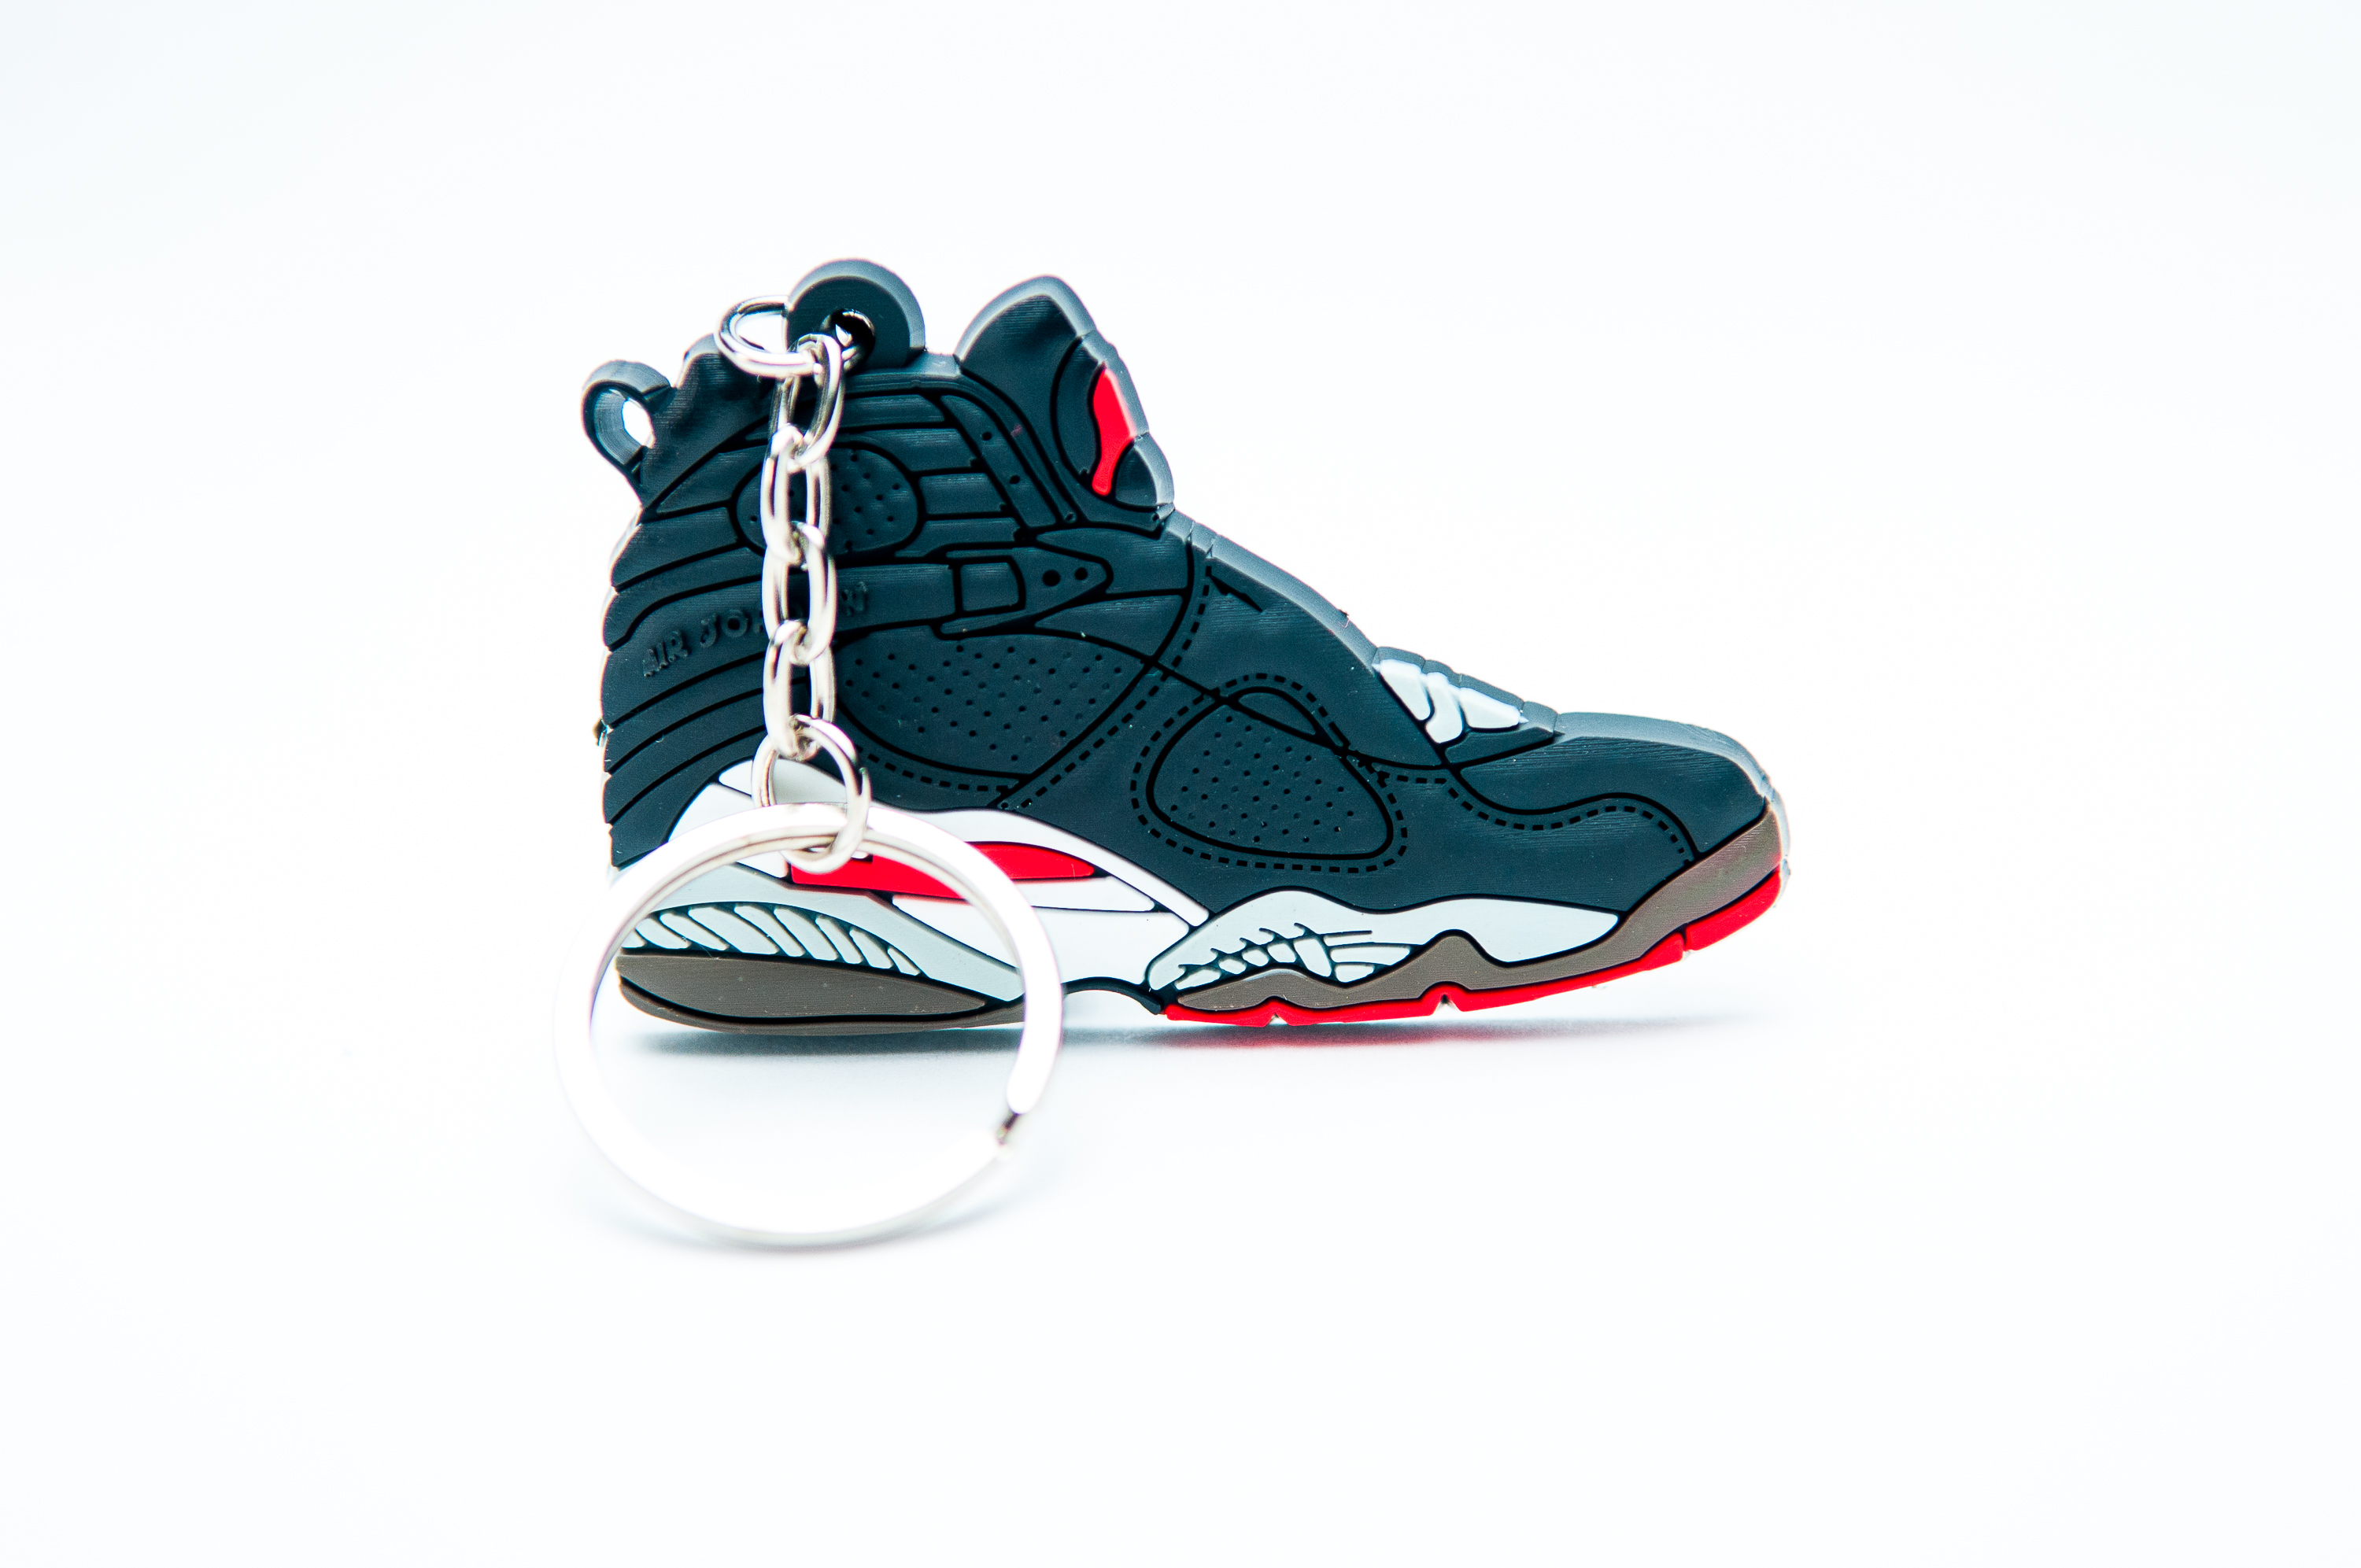 6f1f1c87b71 Nike Air Jordan 8 Retro Black Red - Kool keyringsKool keyrings